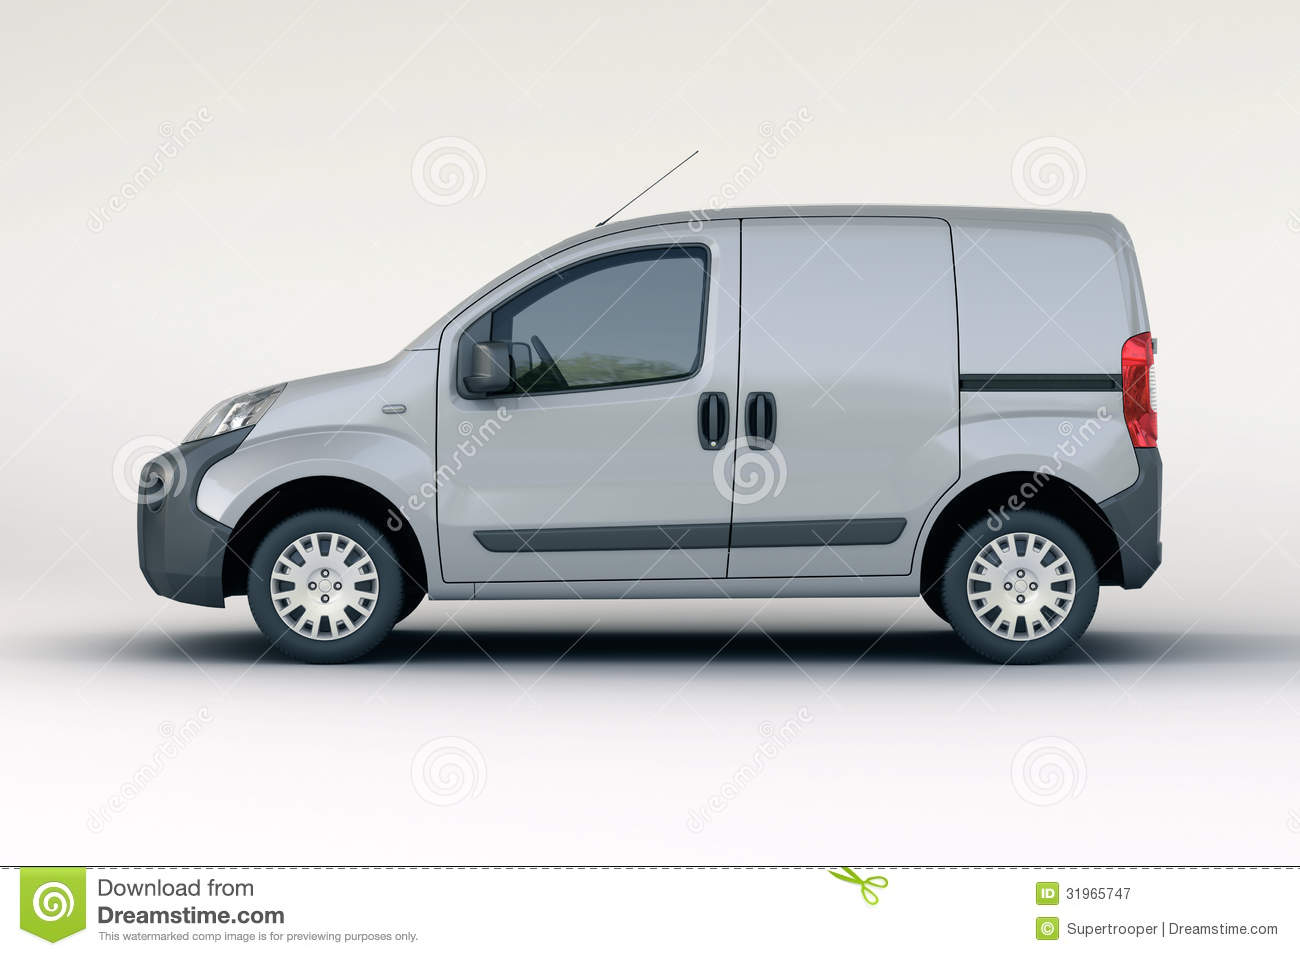 Commercial Vehicle Royalty Free Stock Photography - Image: 31965747